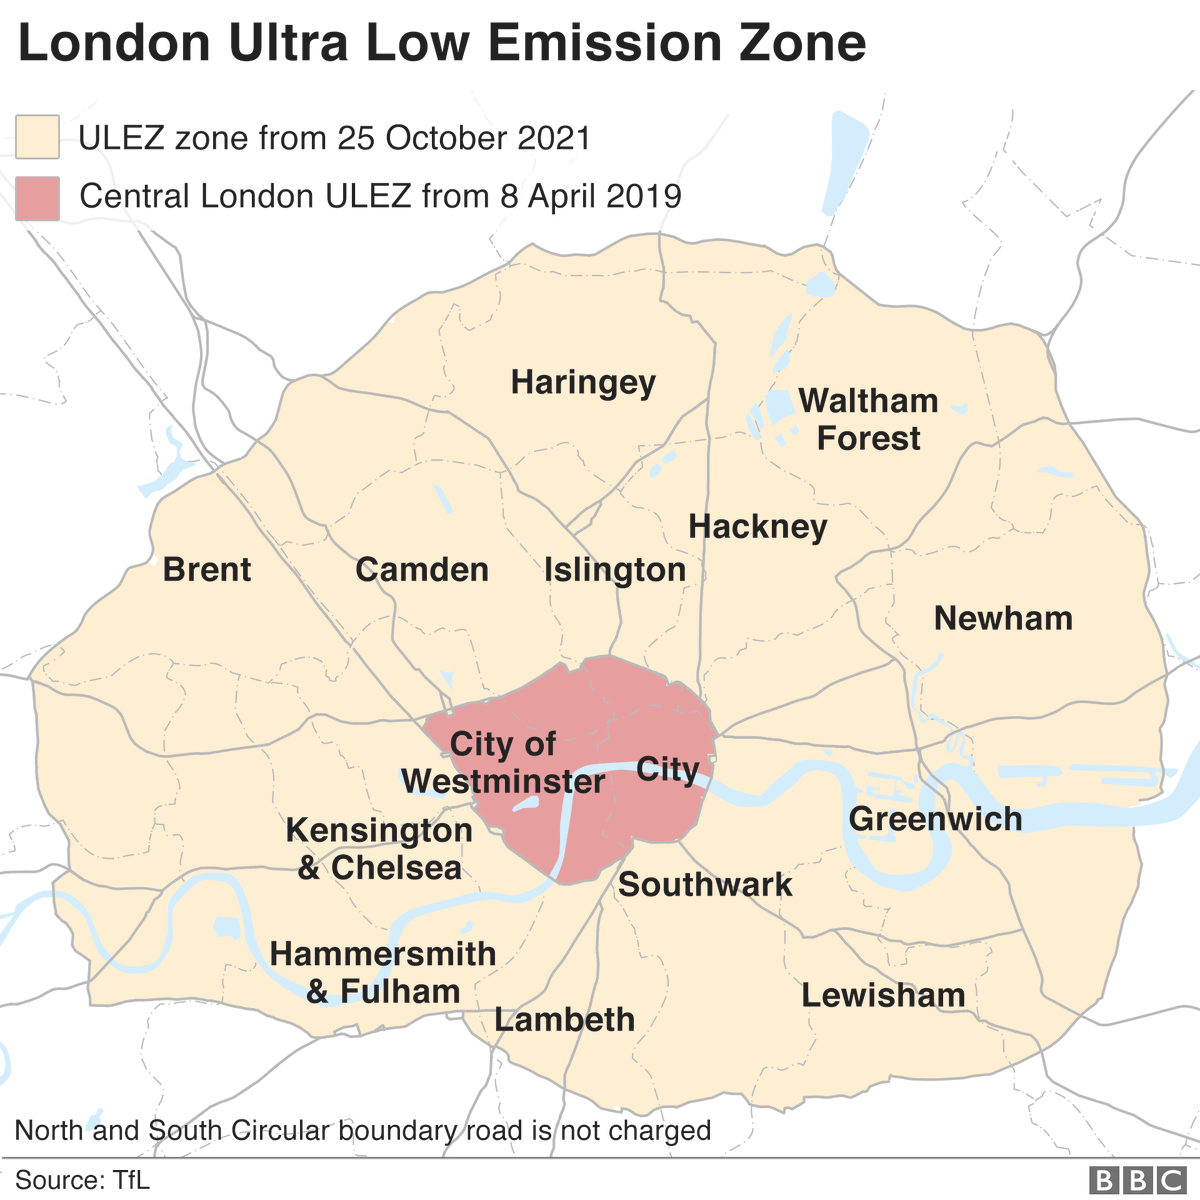 The Ultra Low Emission Zone (ULEZ) has come into force in central London bbc.co.uk/news/uk-englan…